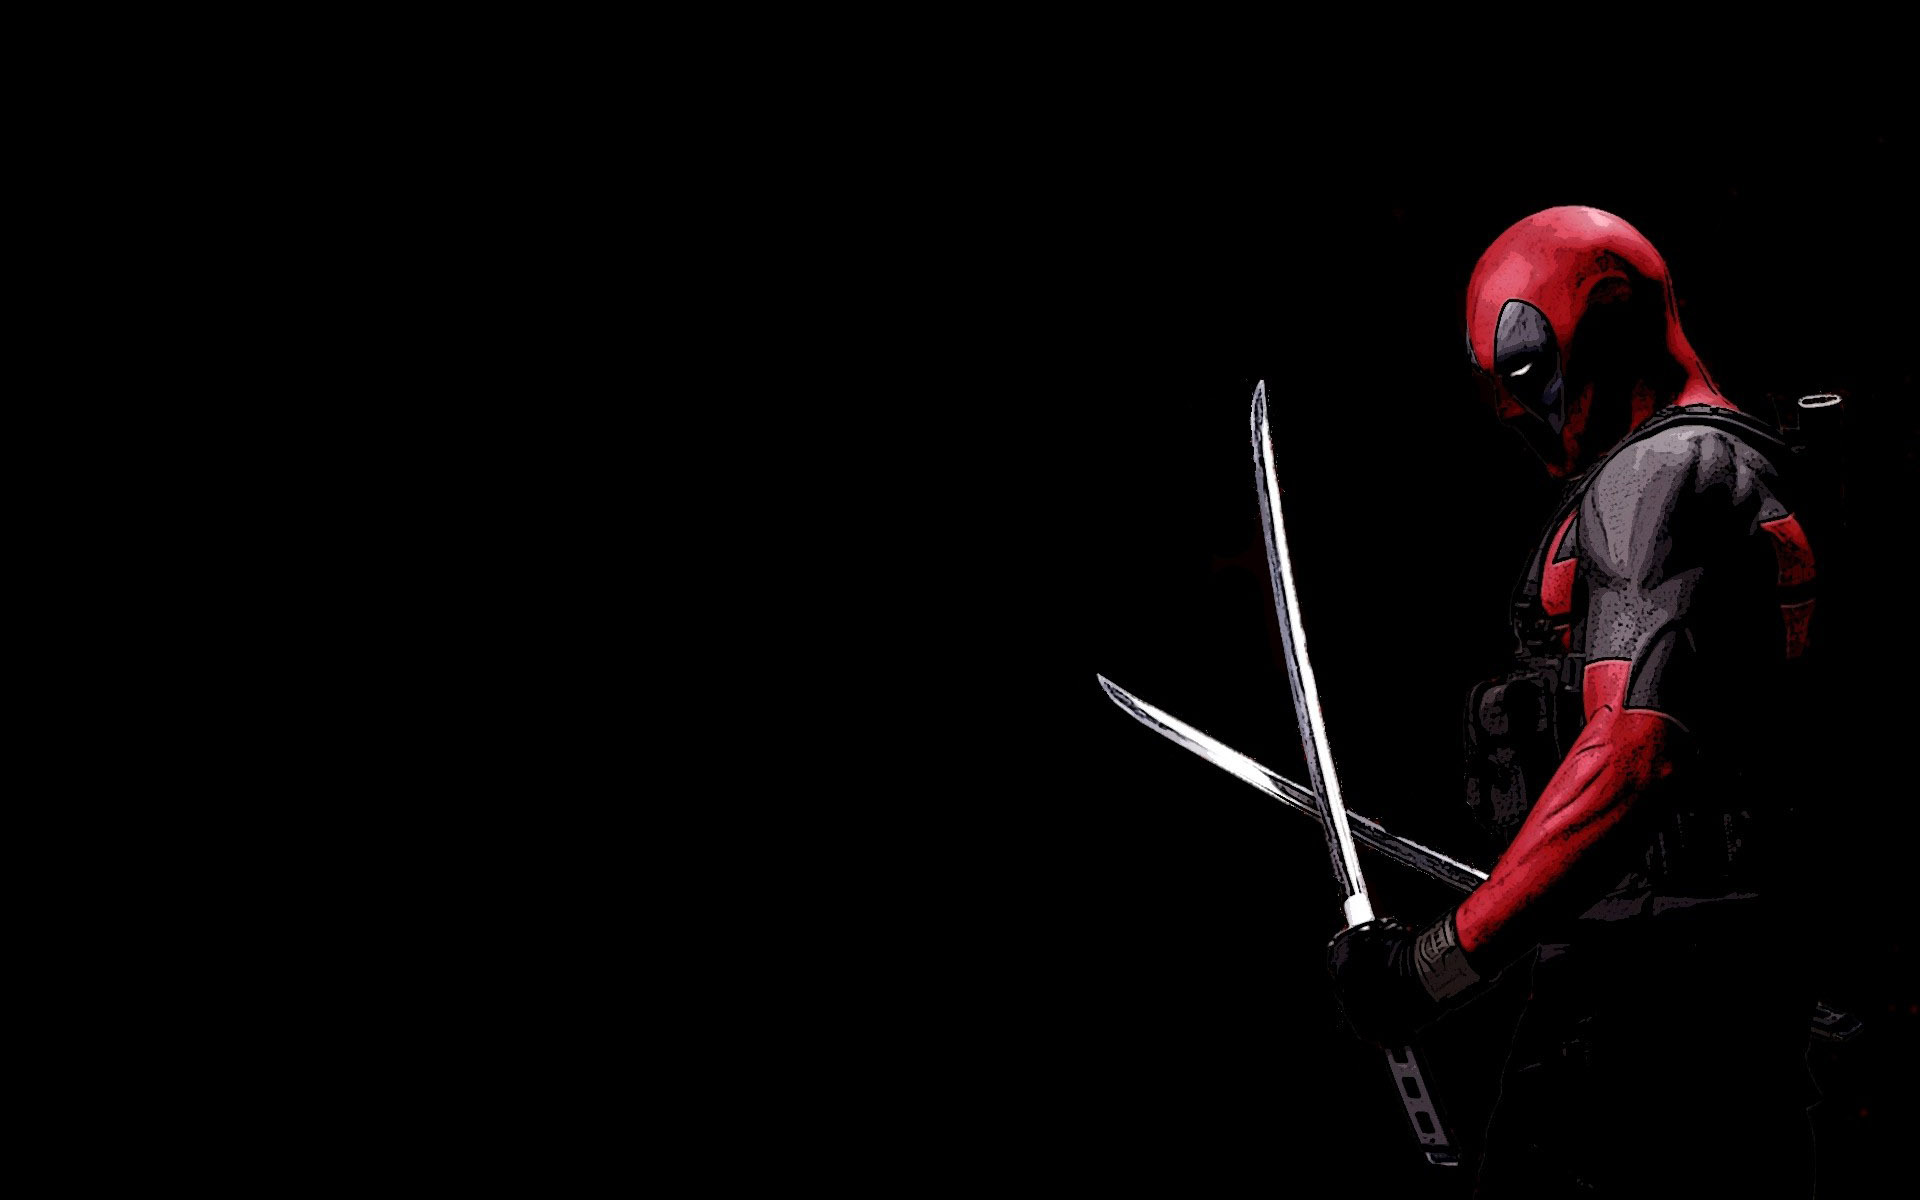 deadpool full hd wallpaper and background image | 1920x1200 | id:74353